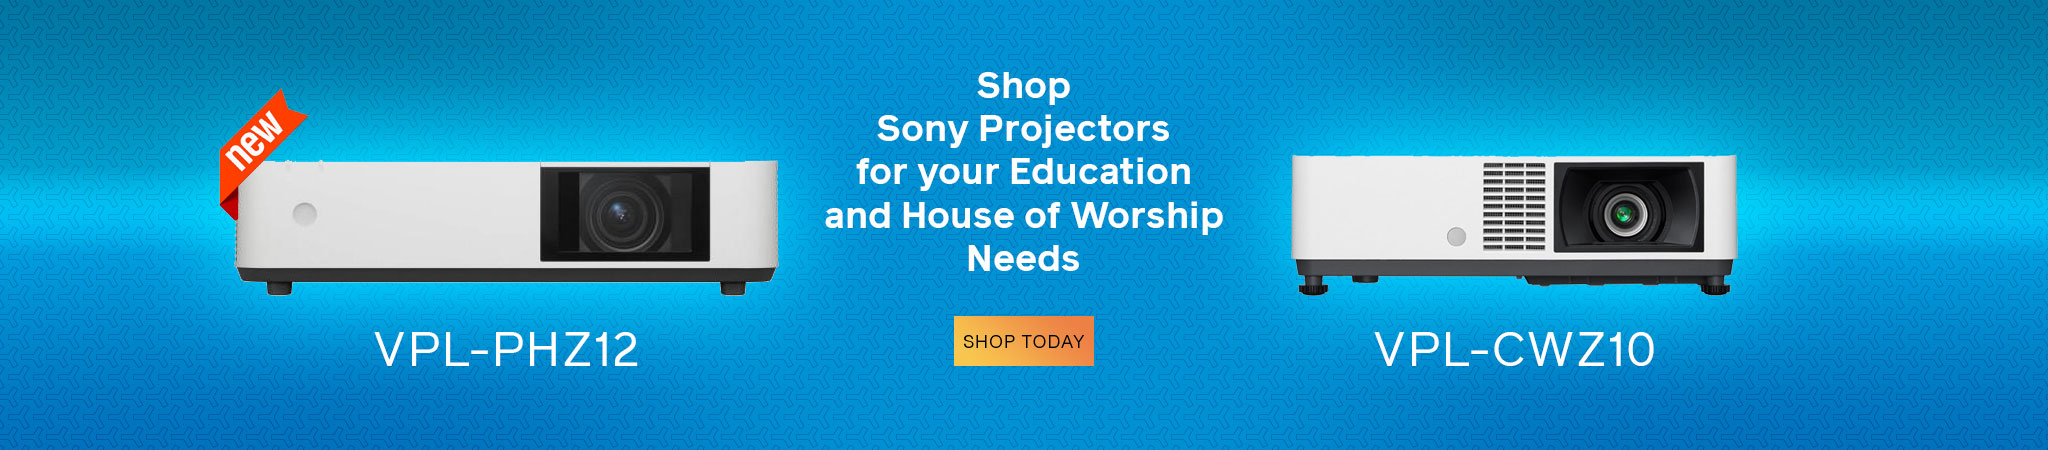 Shop new laser Sony projectors